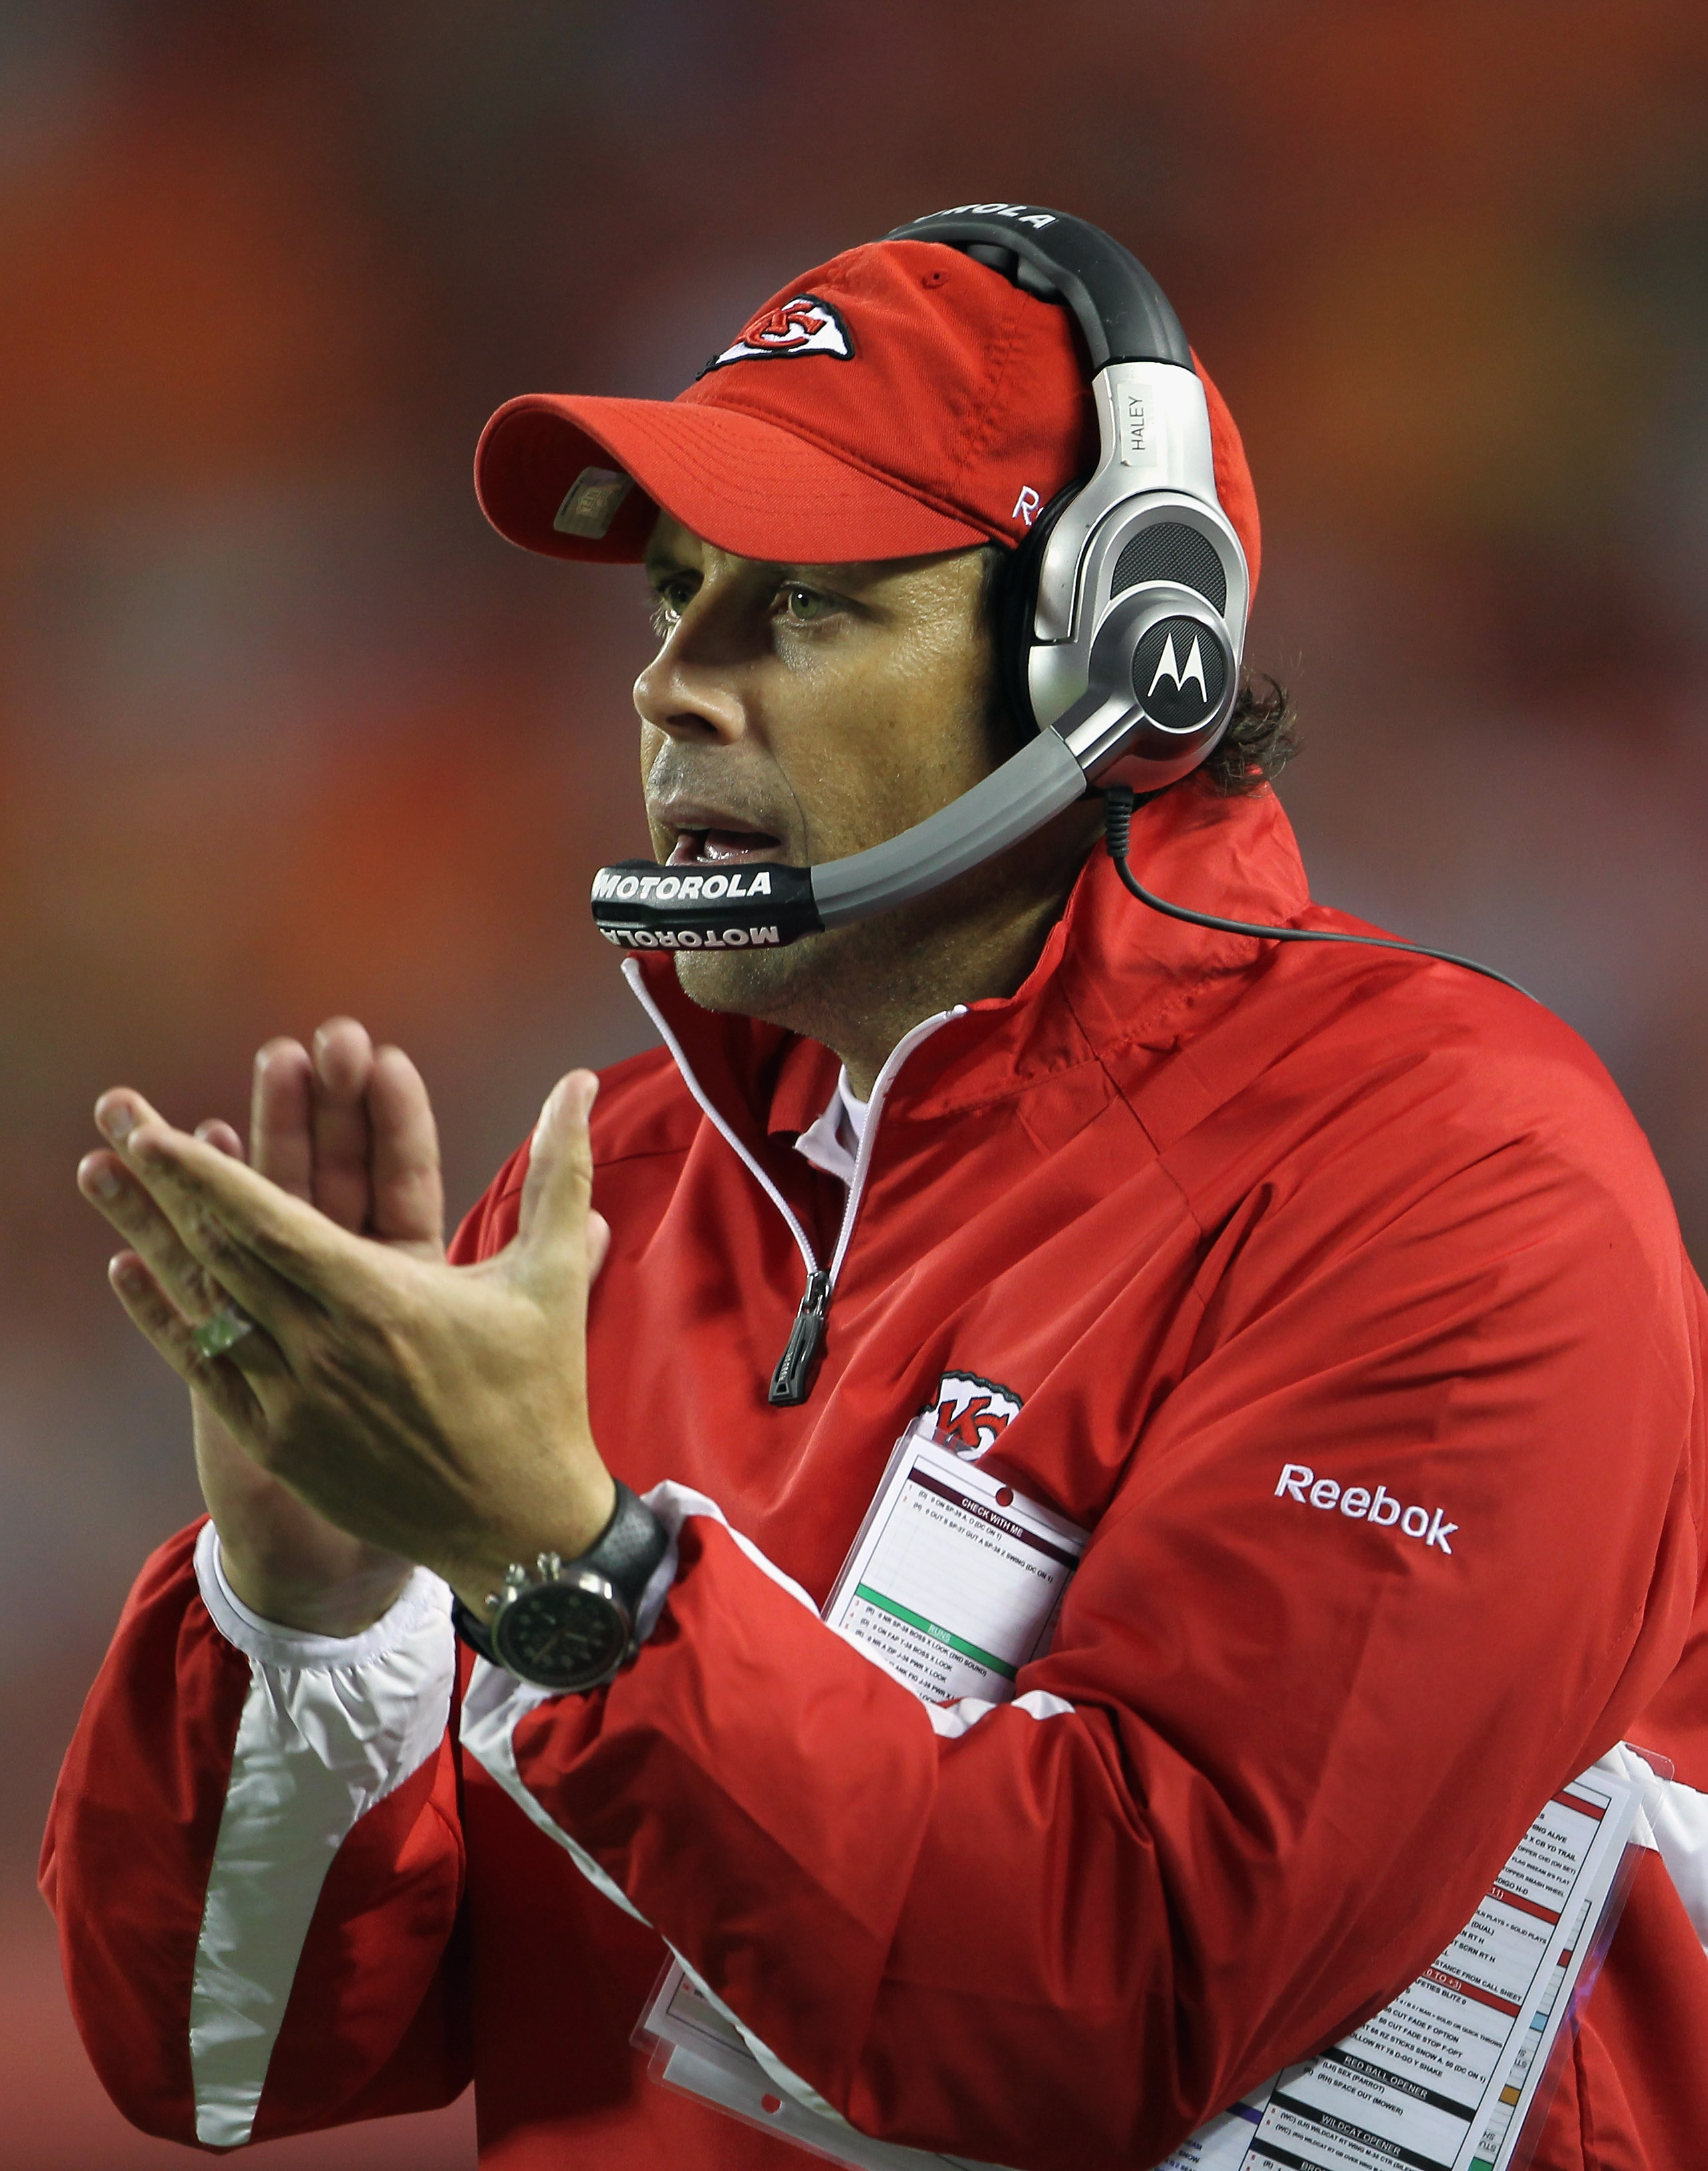 KANSAS CITY, MO - SEPTEMBER 02:  Head coach Todd Haley of the Kansas City Chiefs applaudes players from the sidelines during the game against the Green Bay Packers on September 2, 2010 at Arrowhead Stadium in Kansas City, Missouri.  (Photo by Jamie Squire